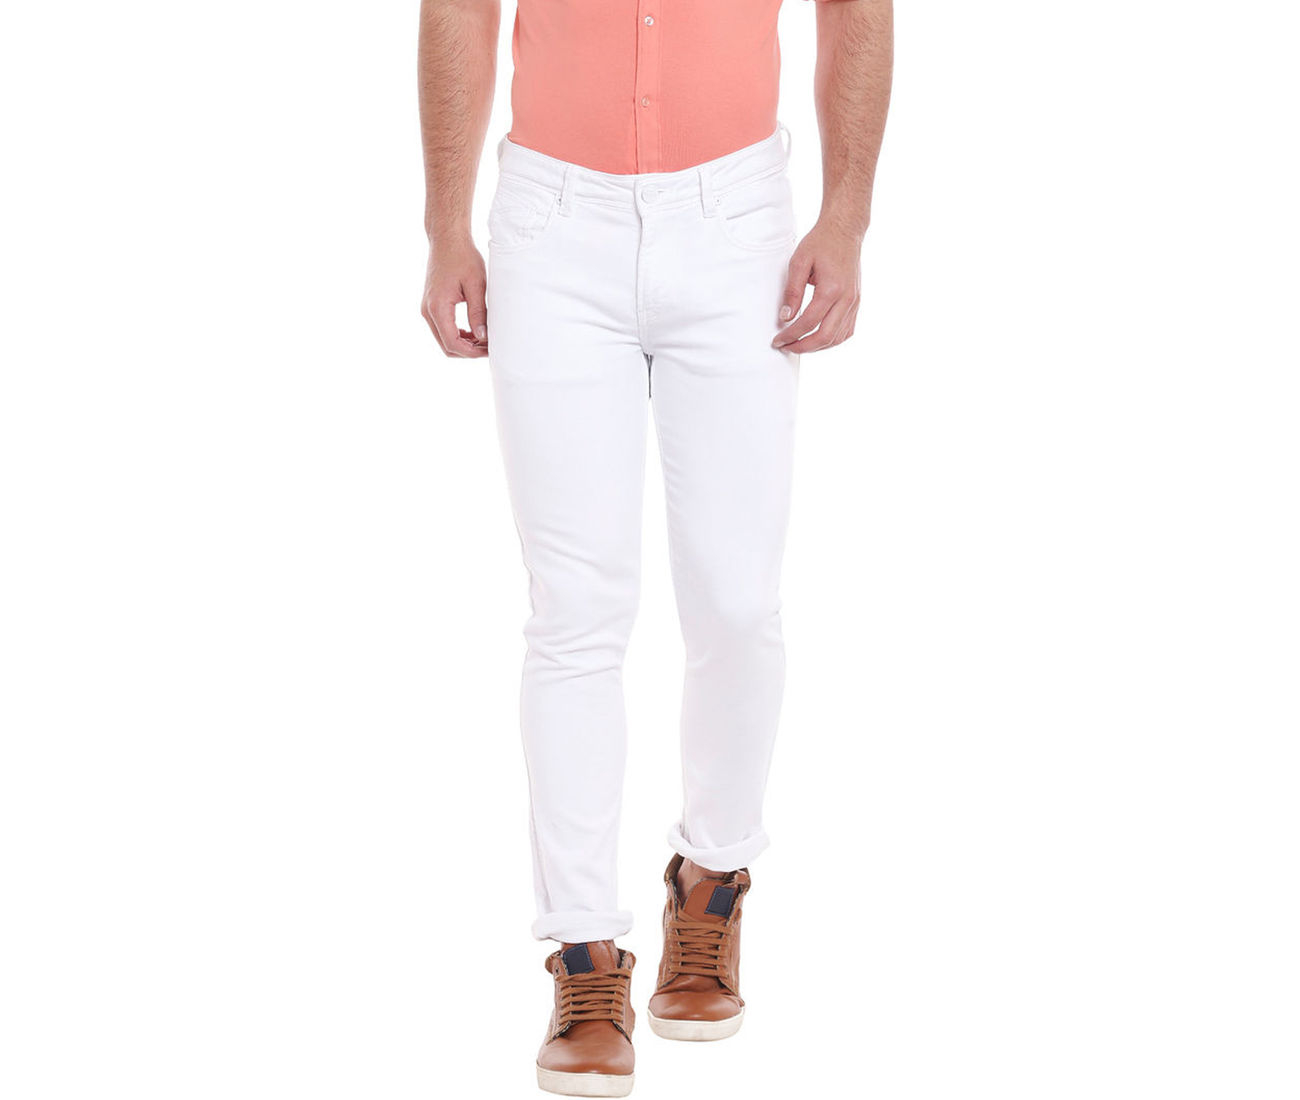 Solid White Color Slim Fit Jeans